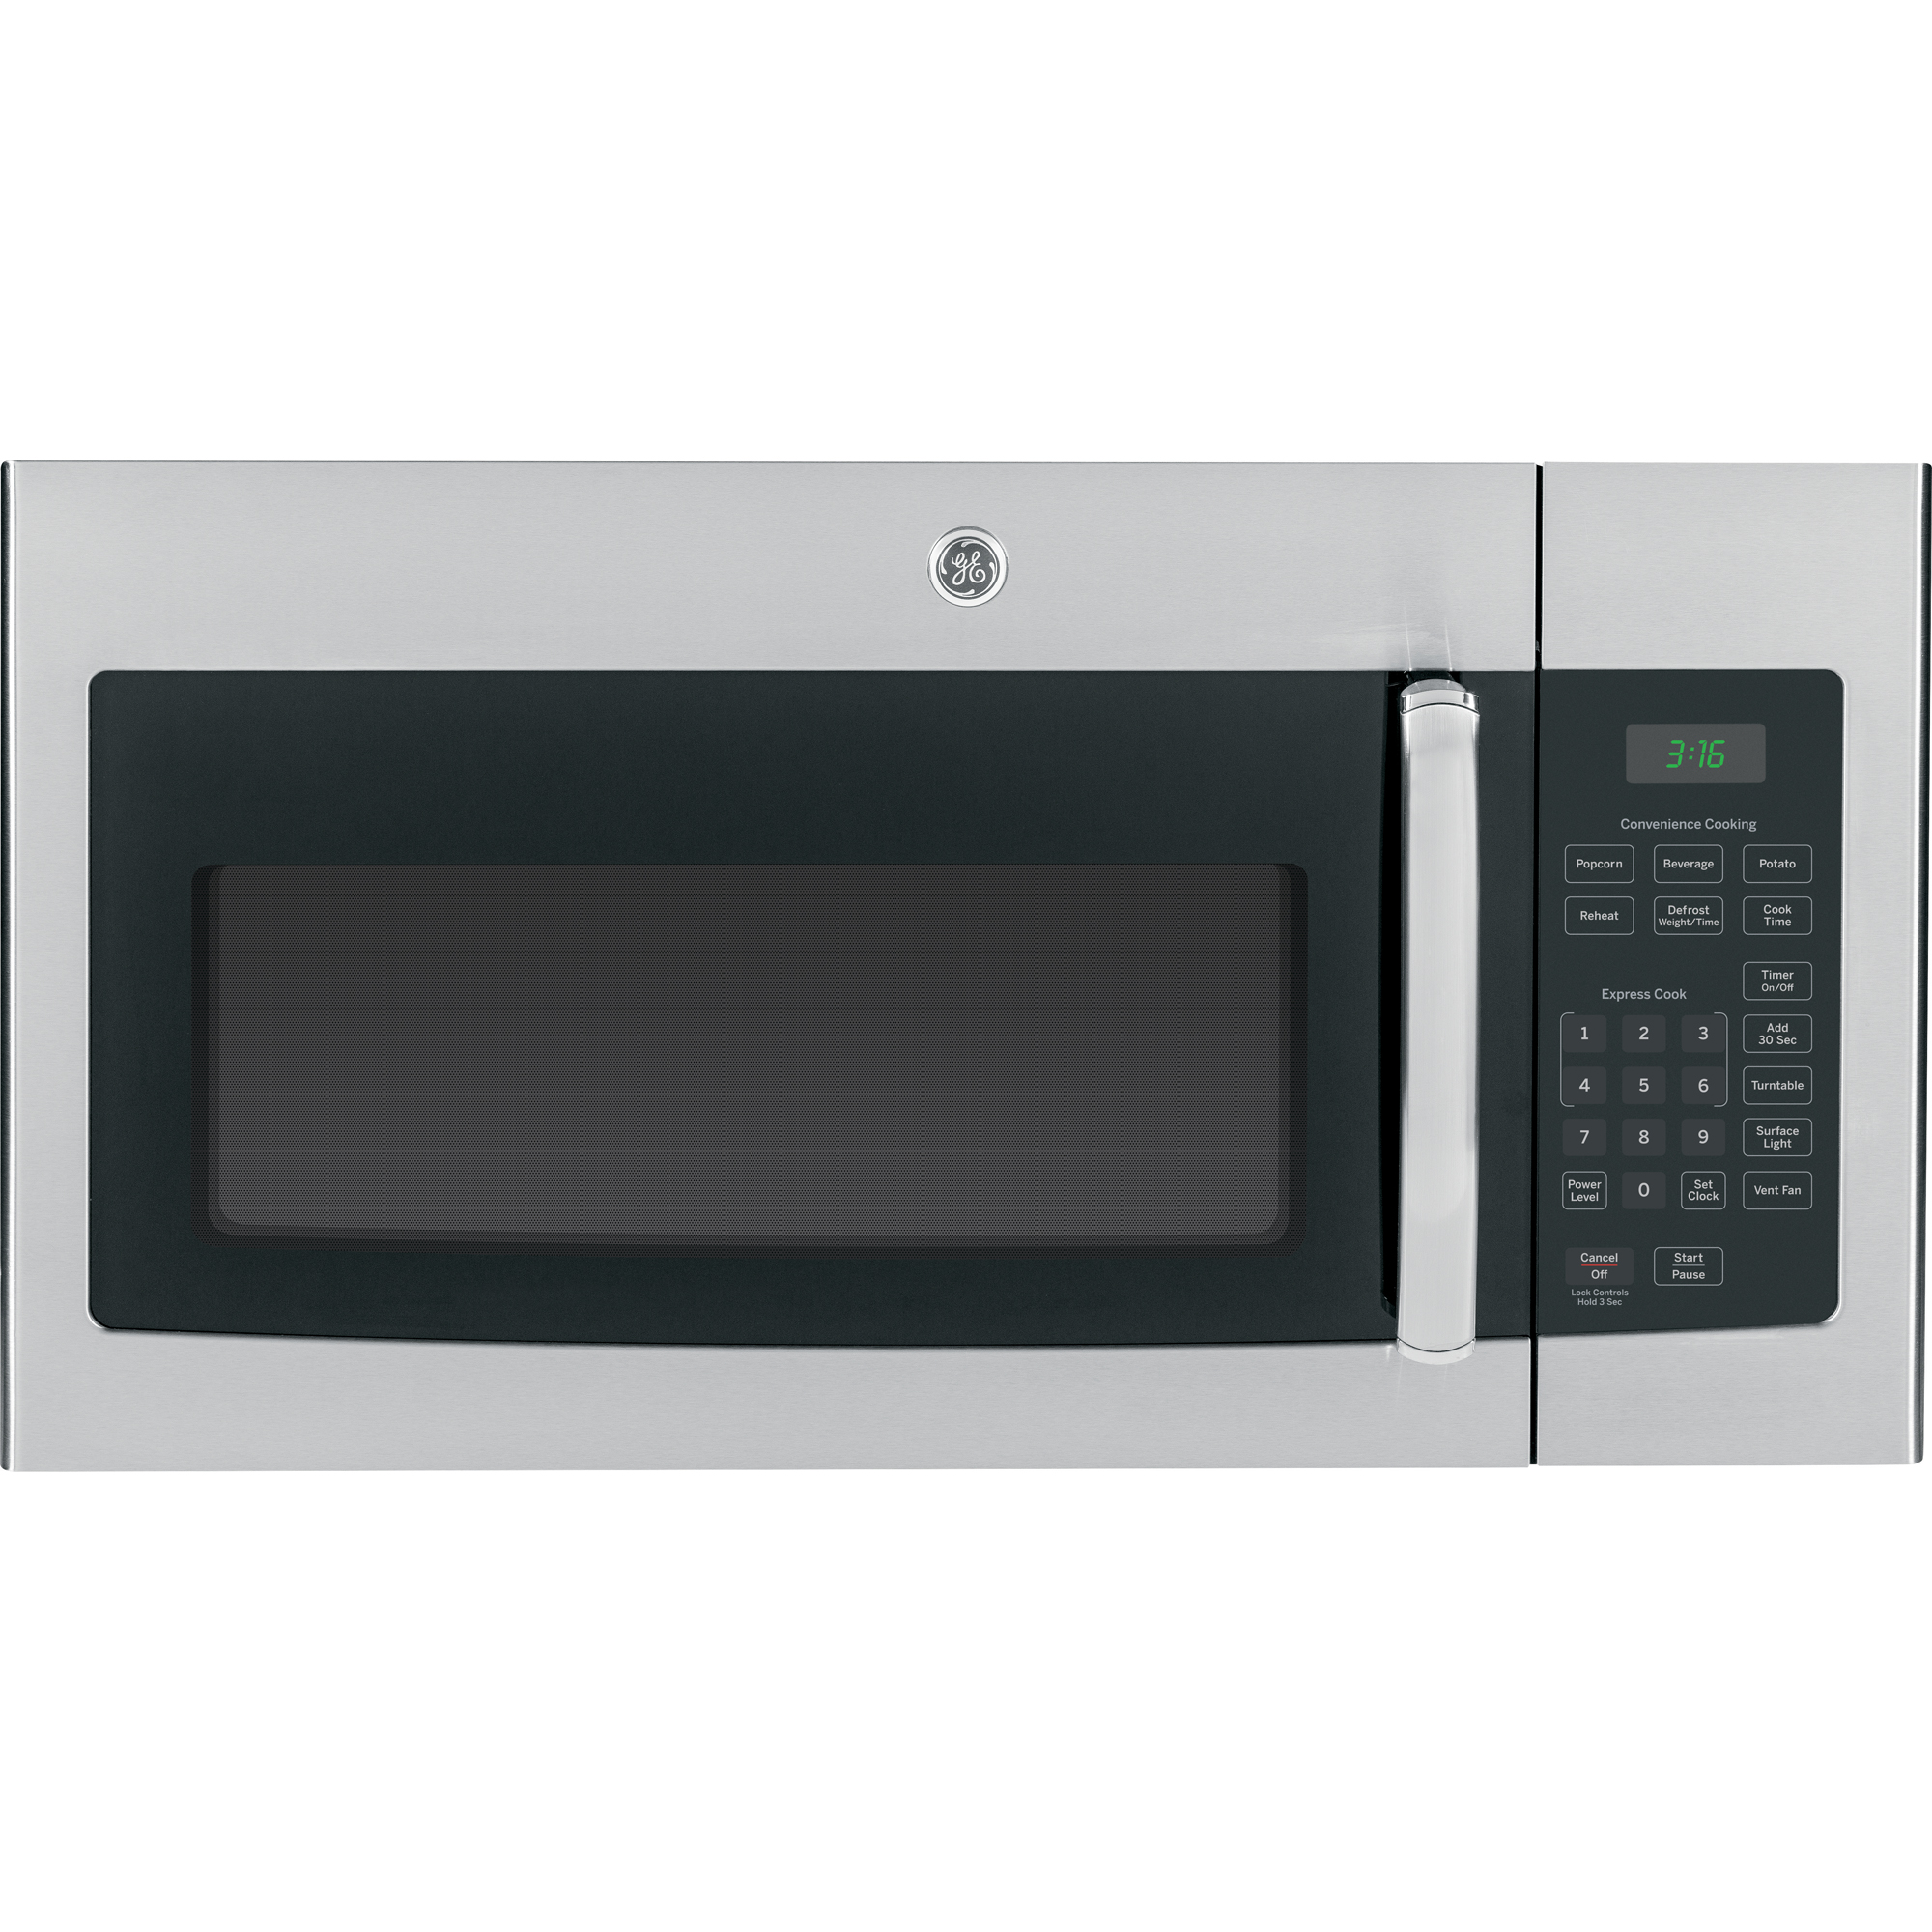 GE� 1.6 CU. FT. OVER-THE-RANGE MICROWAVE OVEN, STAINLESS, 1000 WATTS